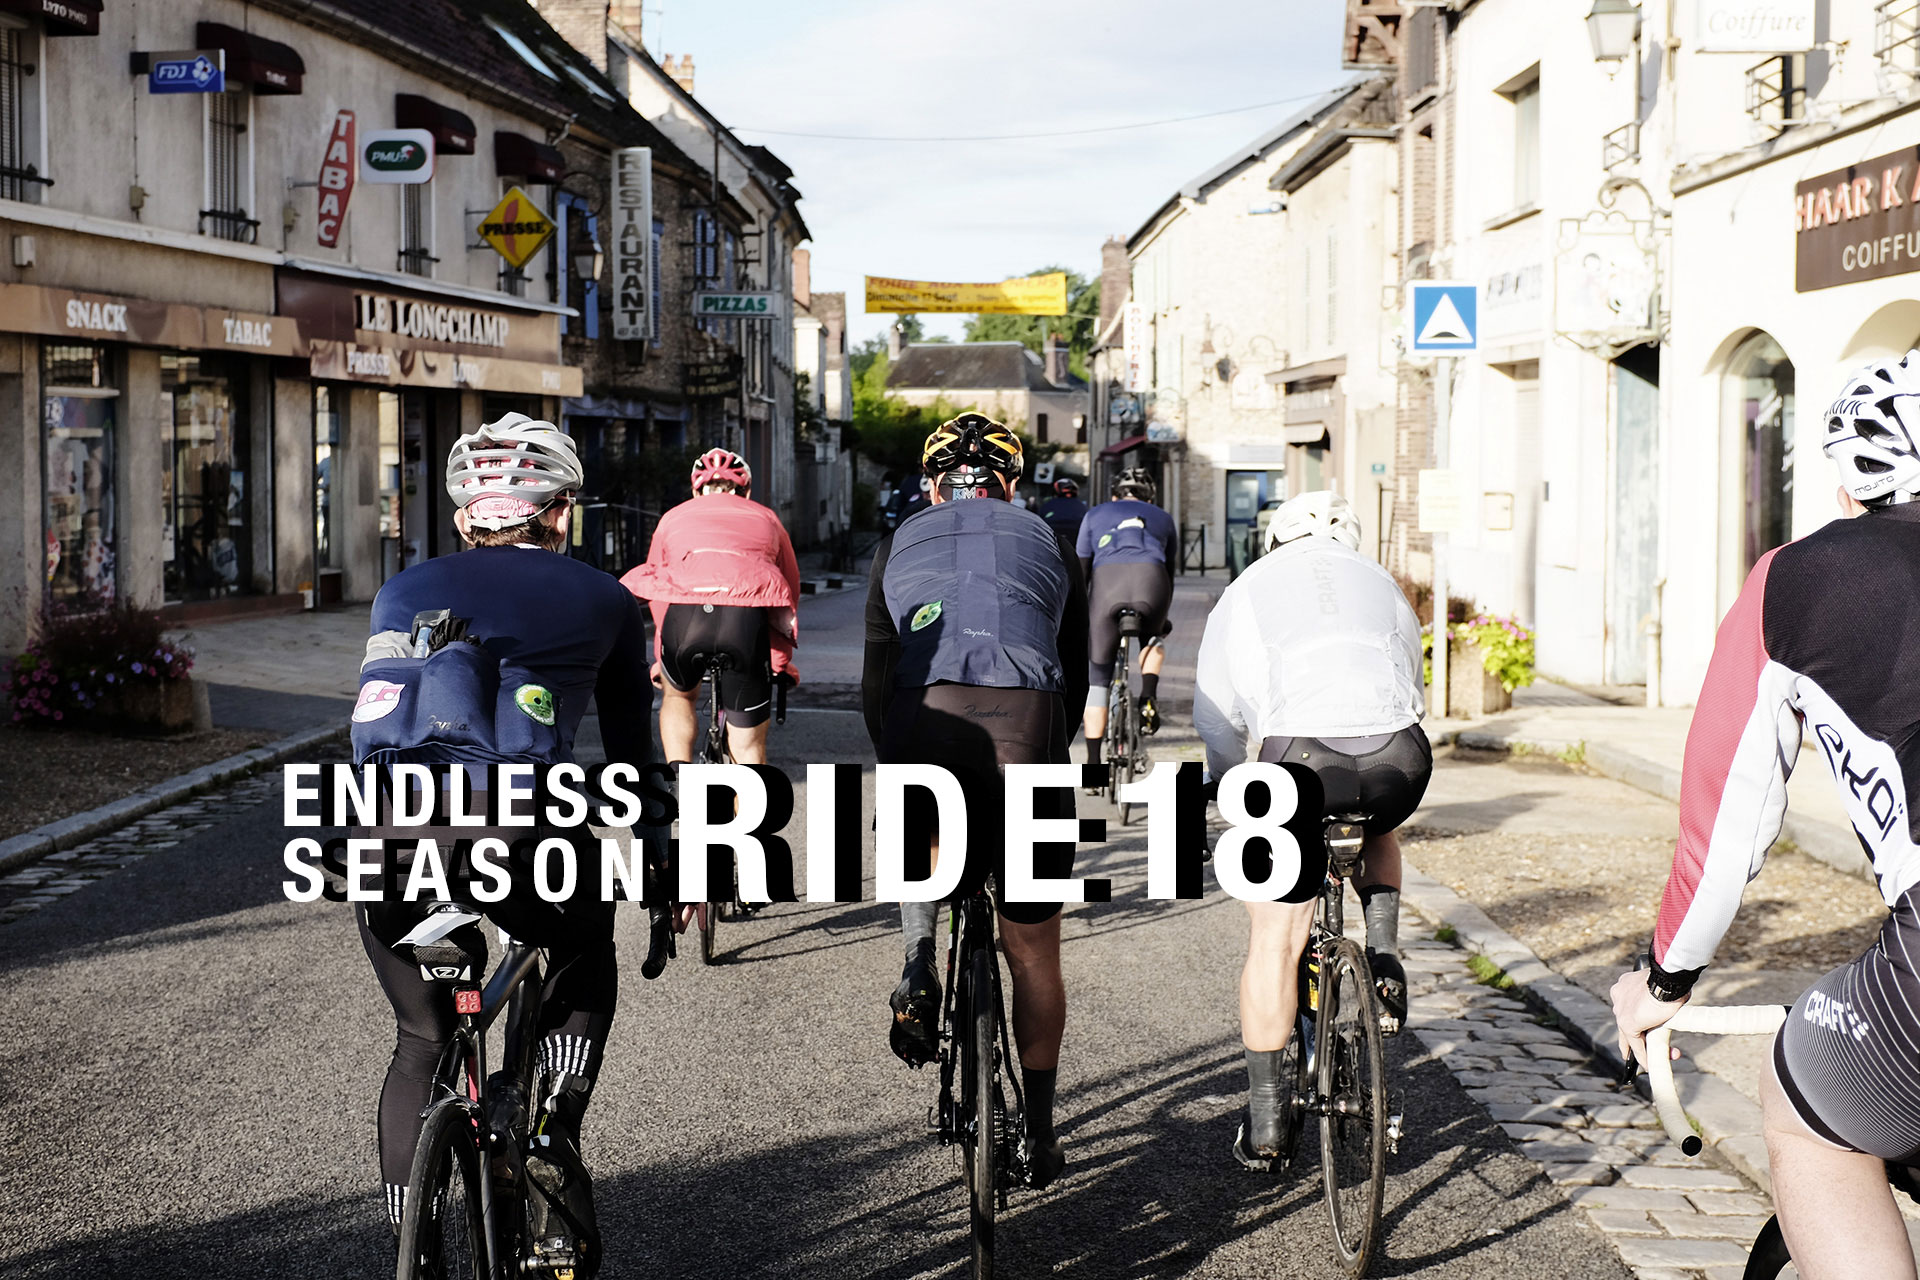 SUGAR & PAIN ENDLESS SEASON RIDE 2018 © Jochen Hoops / Creative Hub Paris